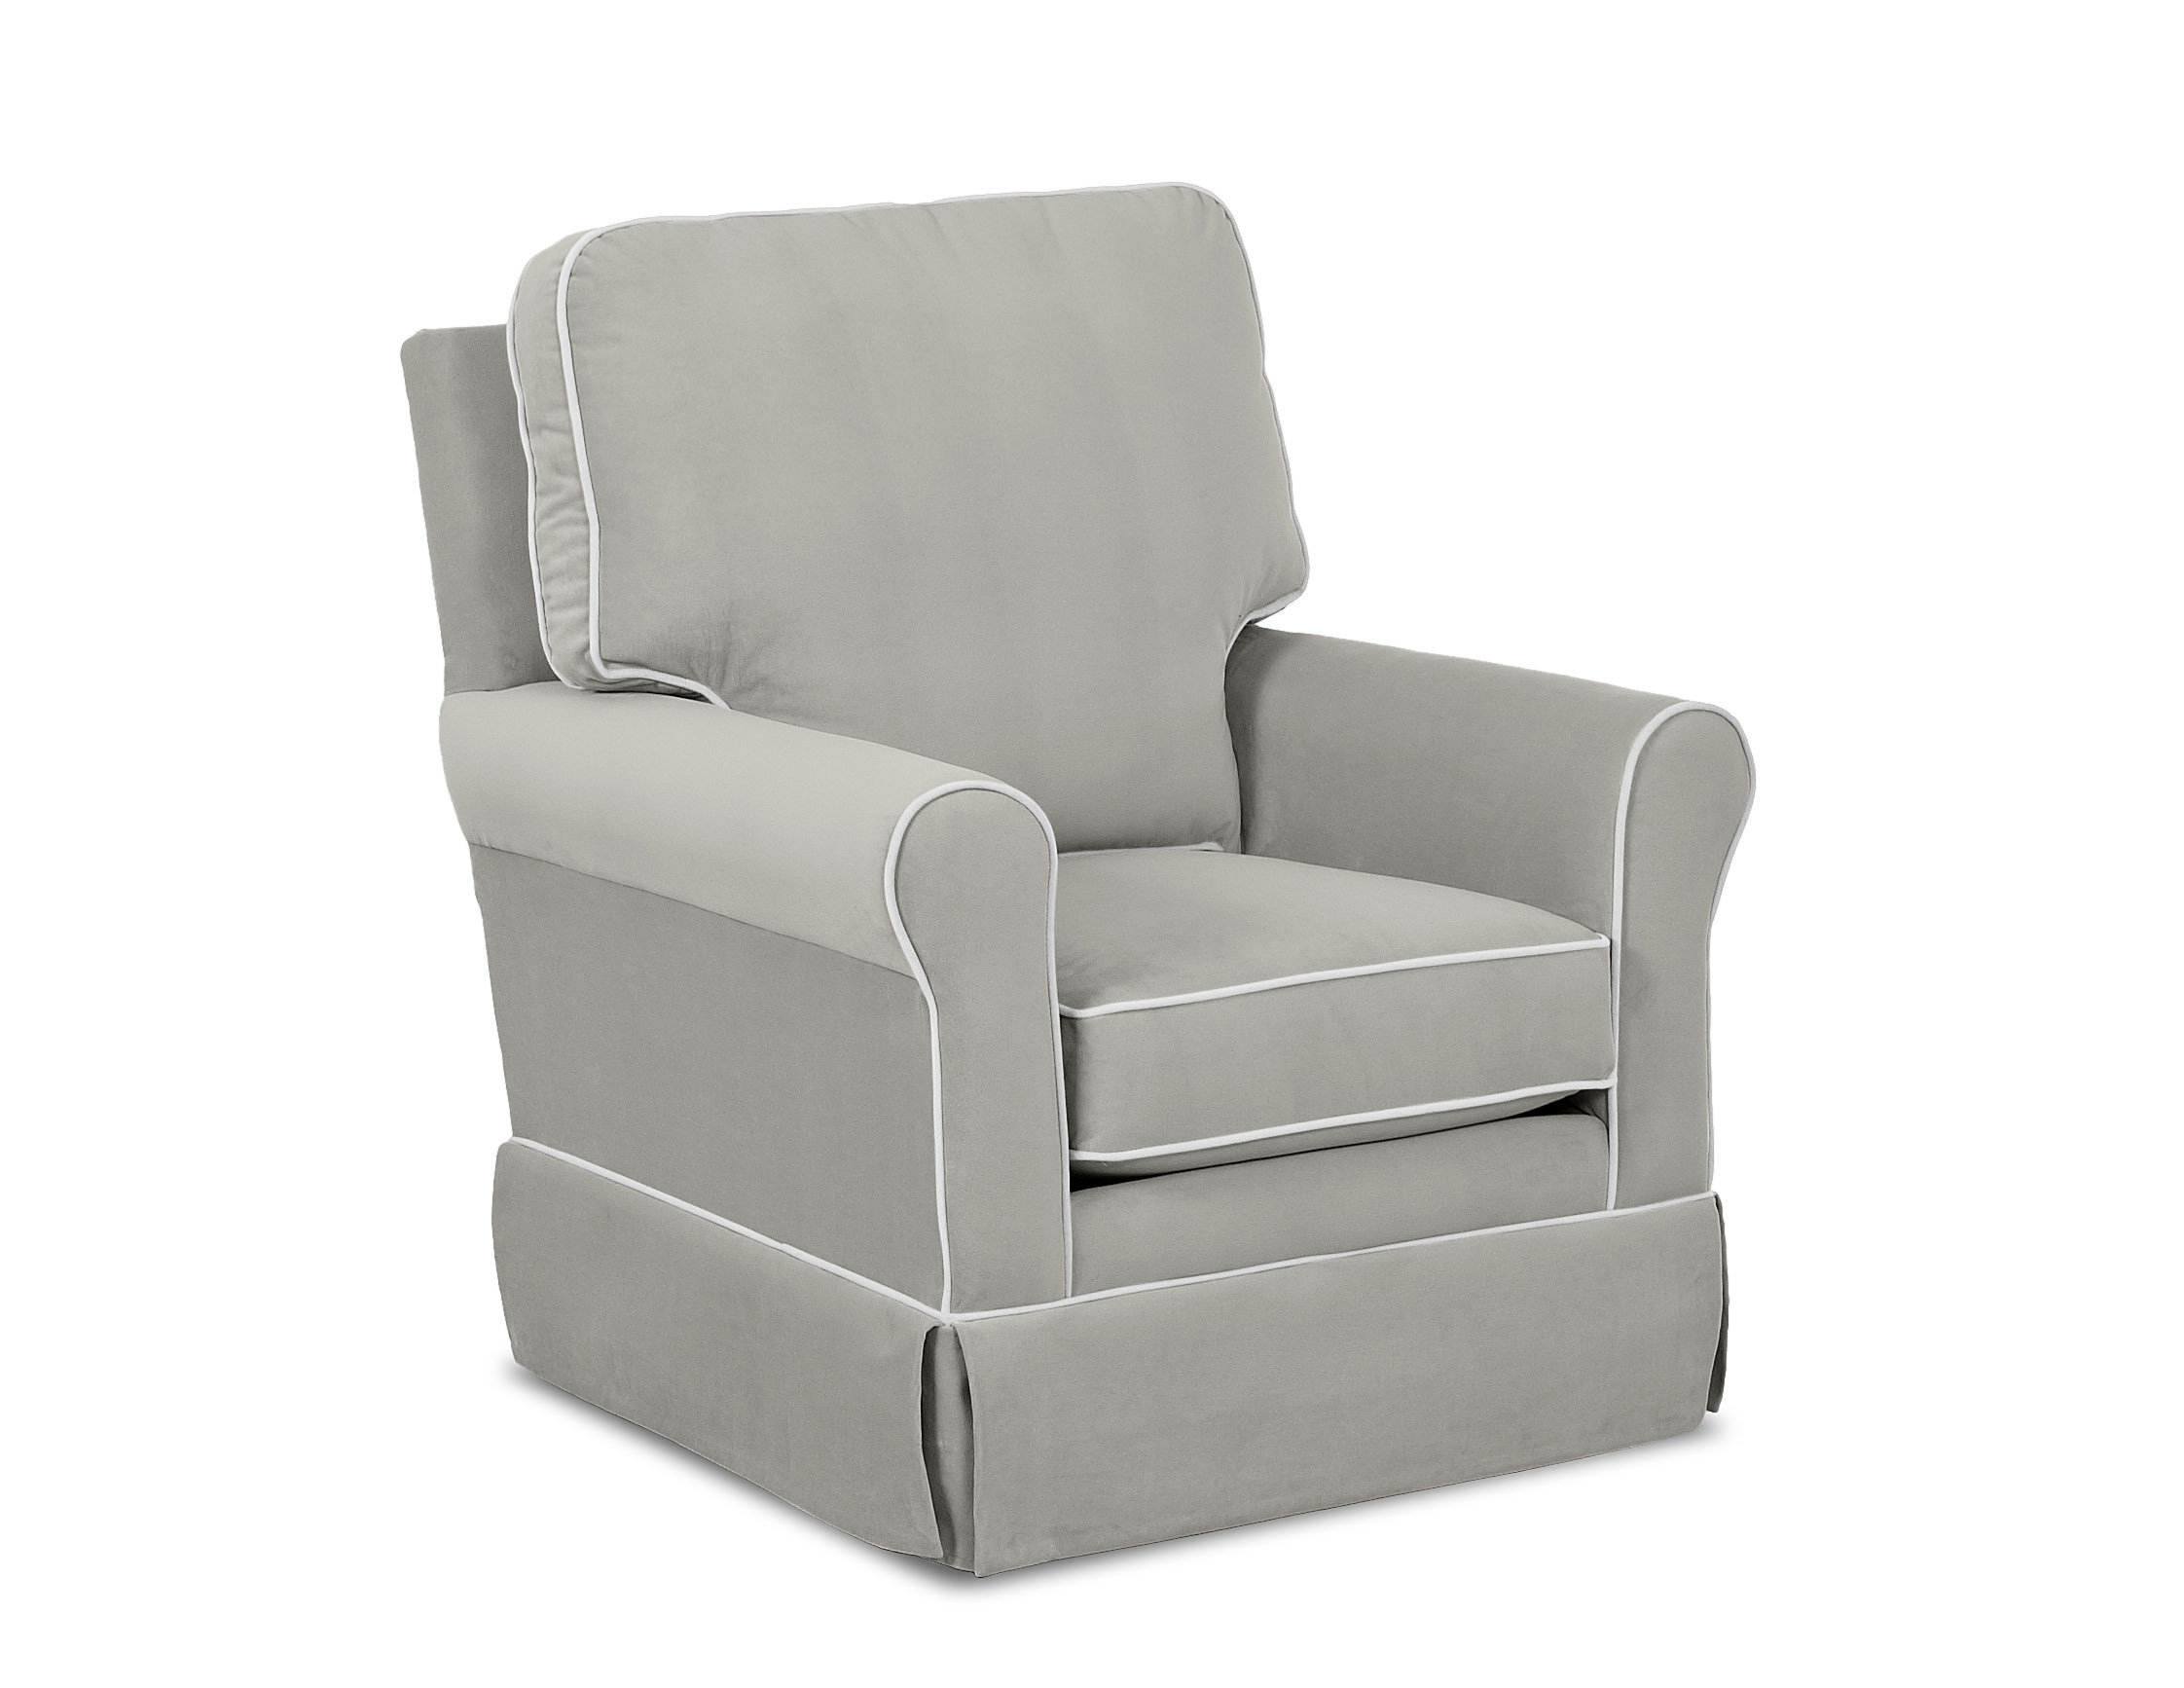 Wayfair Custom Upholstery™ Bridgeport Swivel Glider With Contrasting Throughout Katrina Beige Swivel Glider Chairs (View 4 of 25)